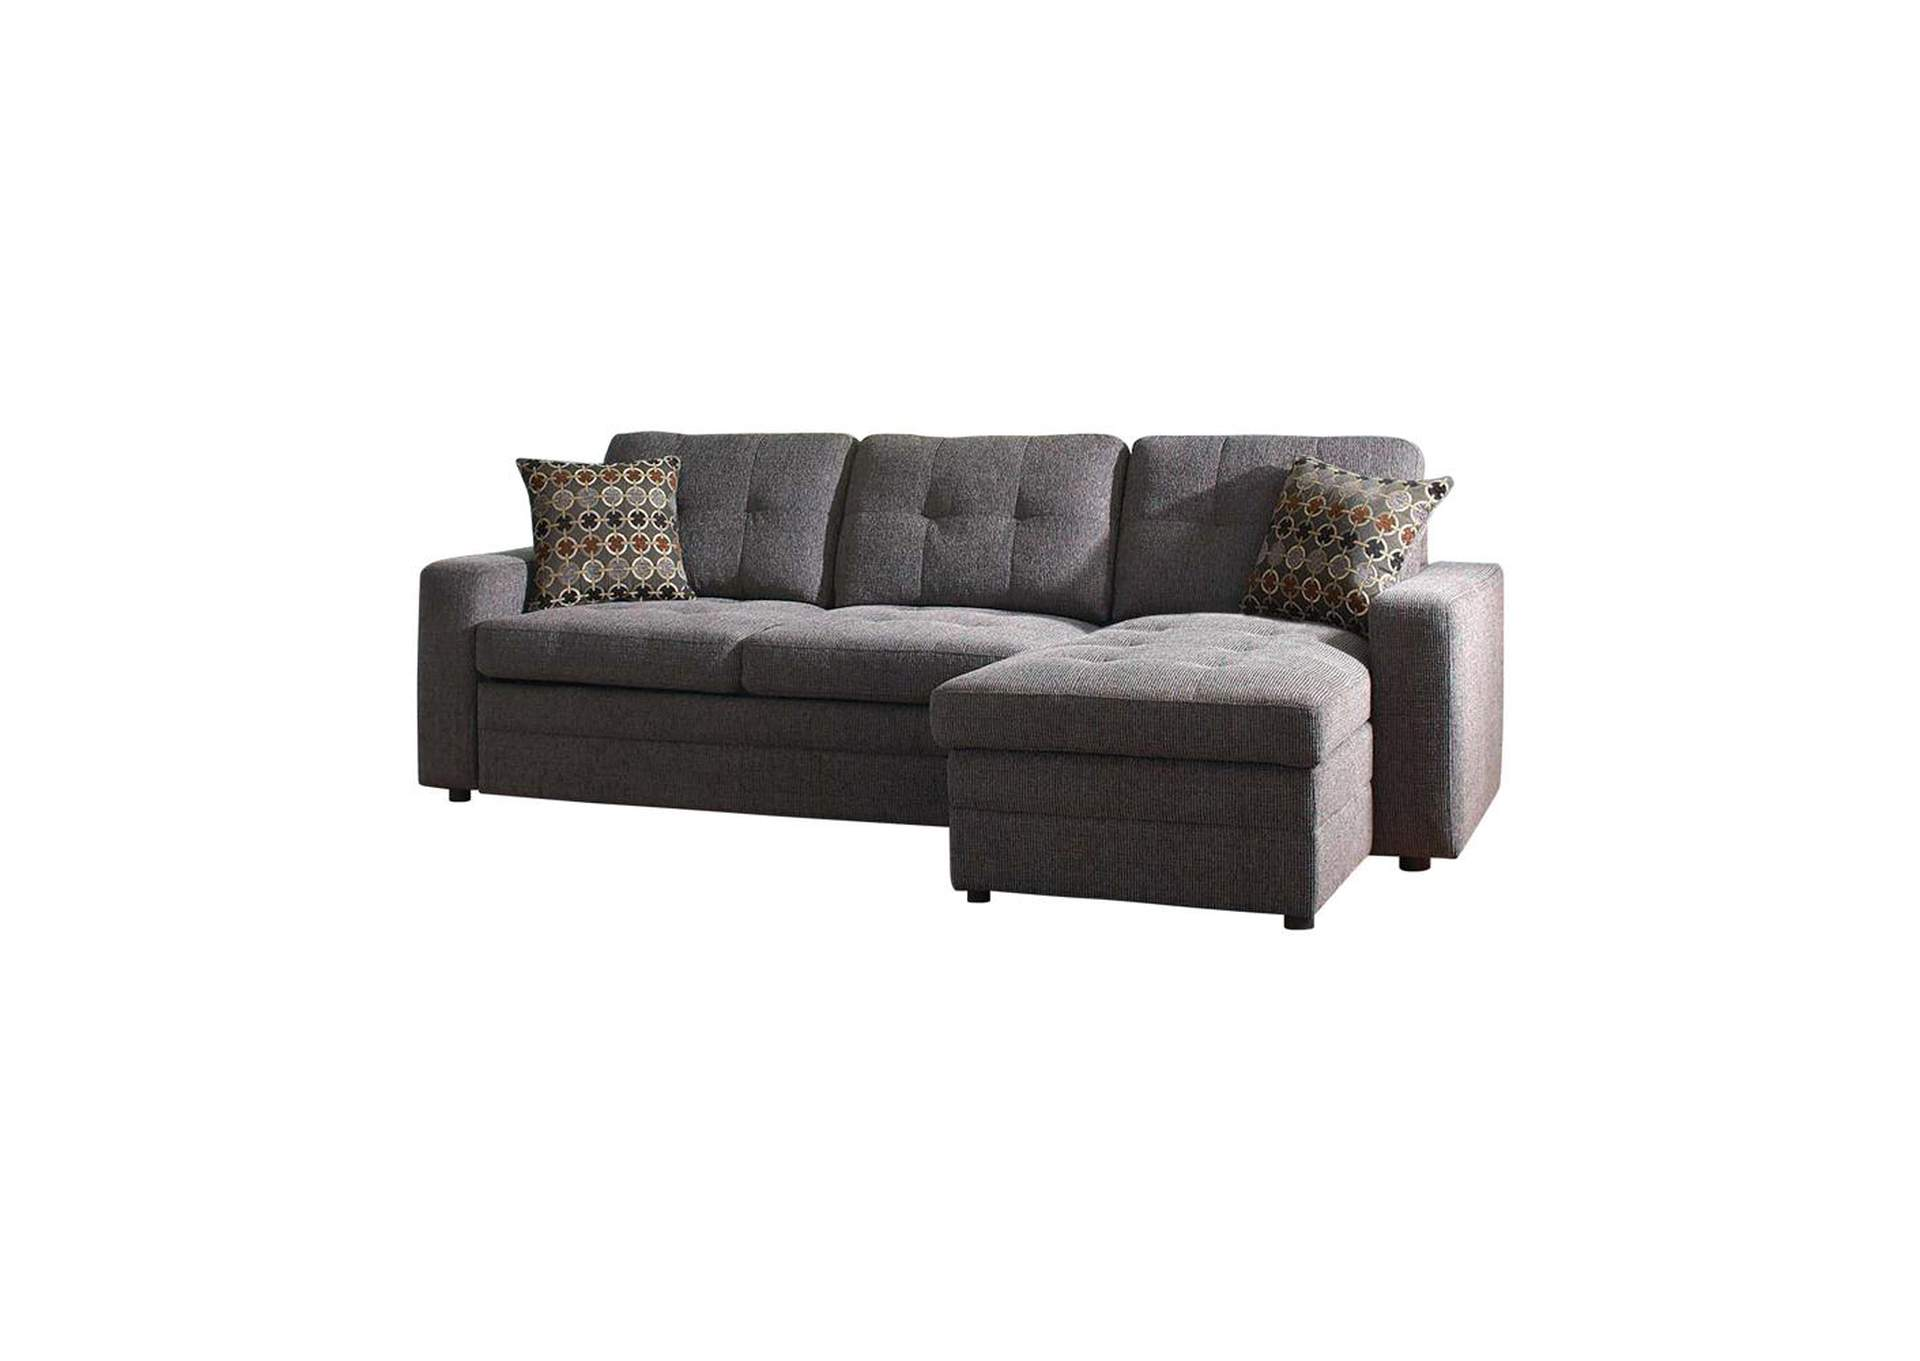 Mine Shaft Gus Casual Charcoal Sectional,Coaster Furniture